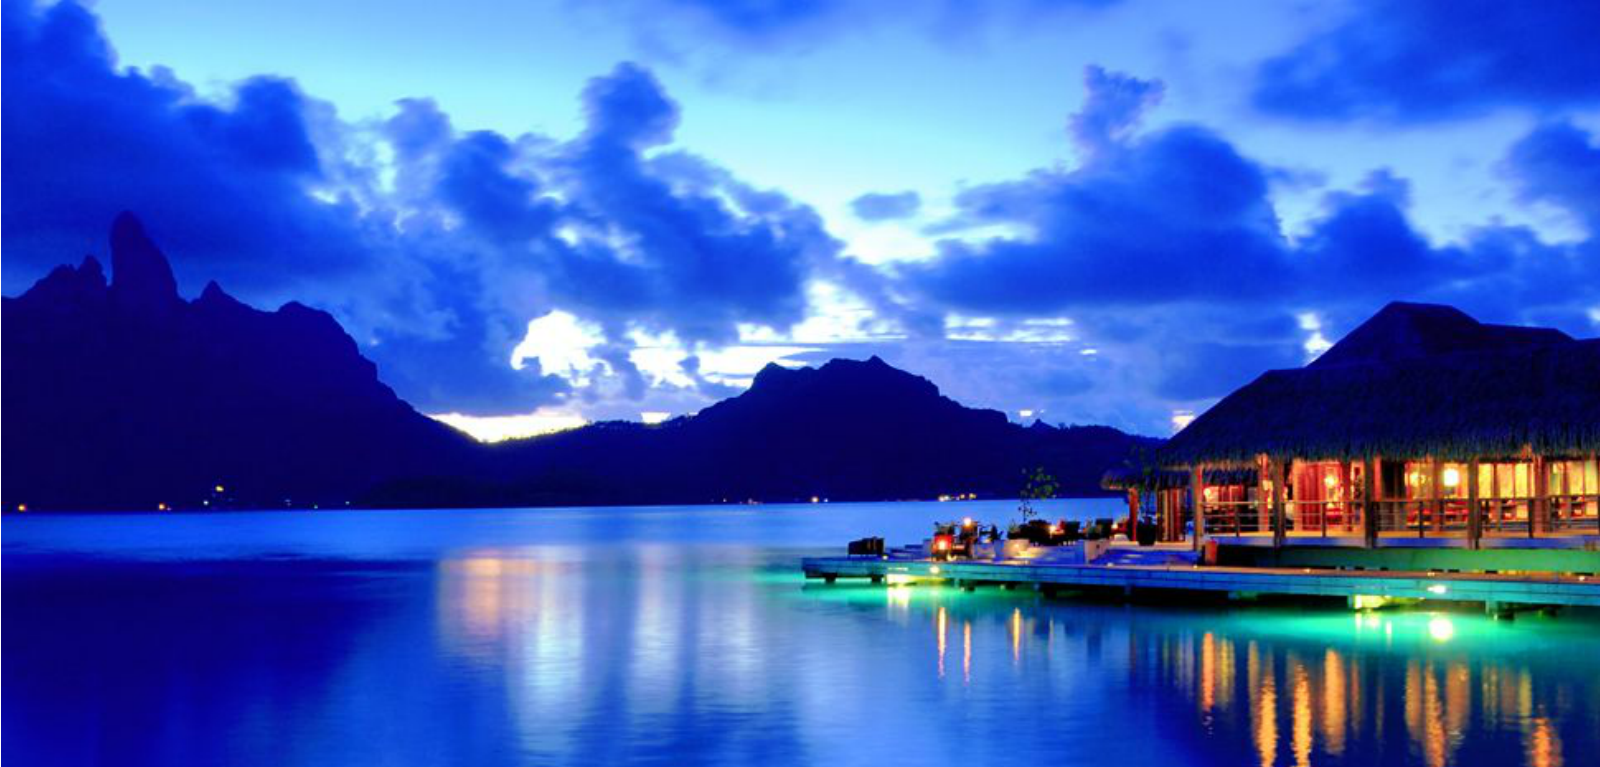 http://www.kiwicollection.com/hotel-detail/st-regis-bora-bora-resort